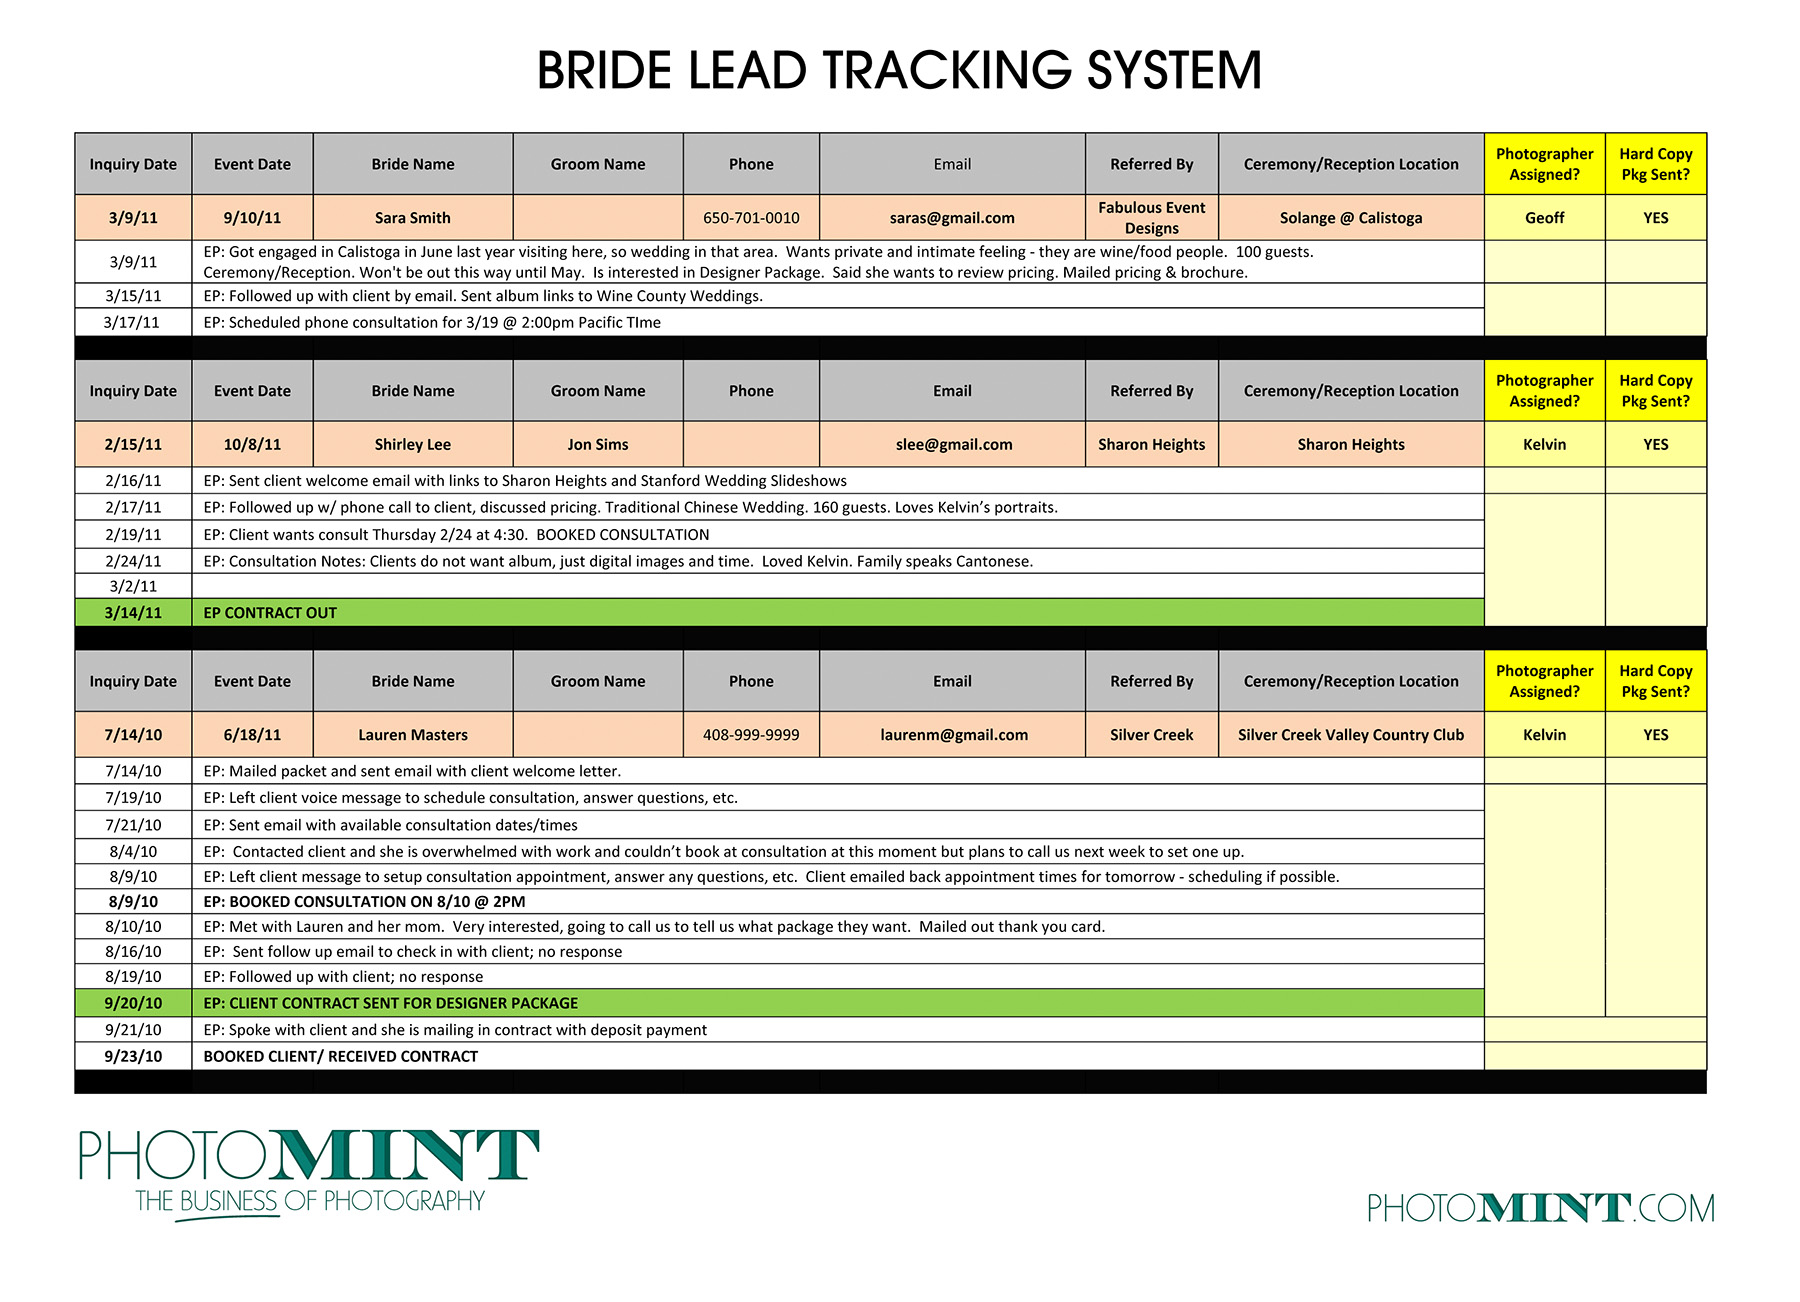 sales tracking spreadsheet Template – Sales Tracking Template